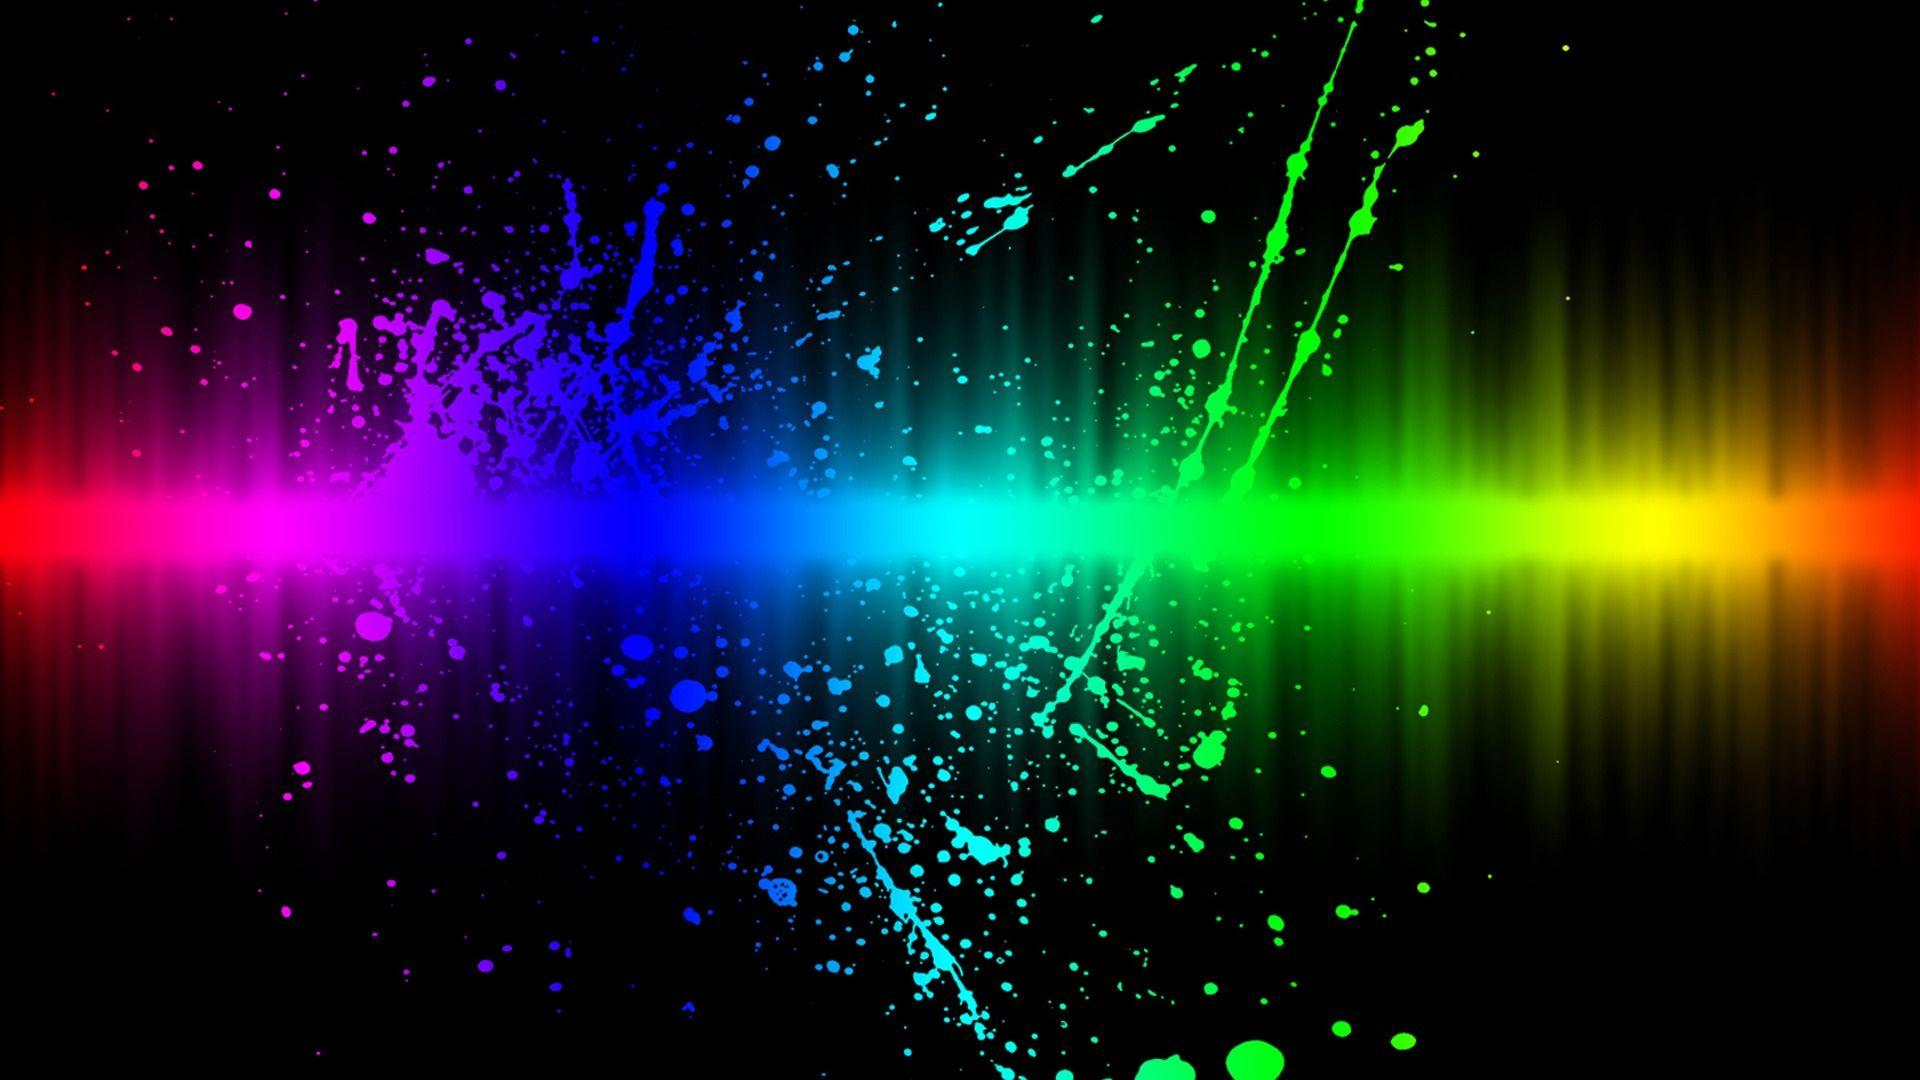 Neon Lights Wallpapers - Wallpaper Cave